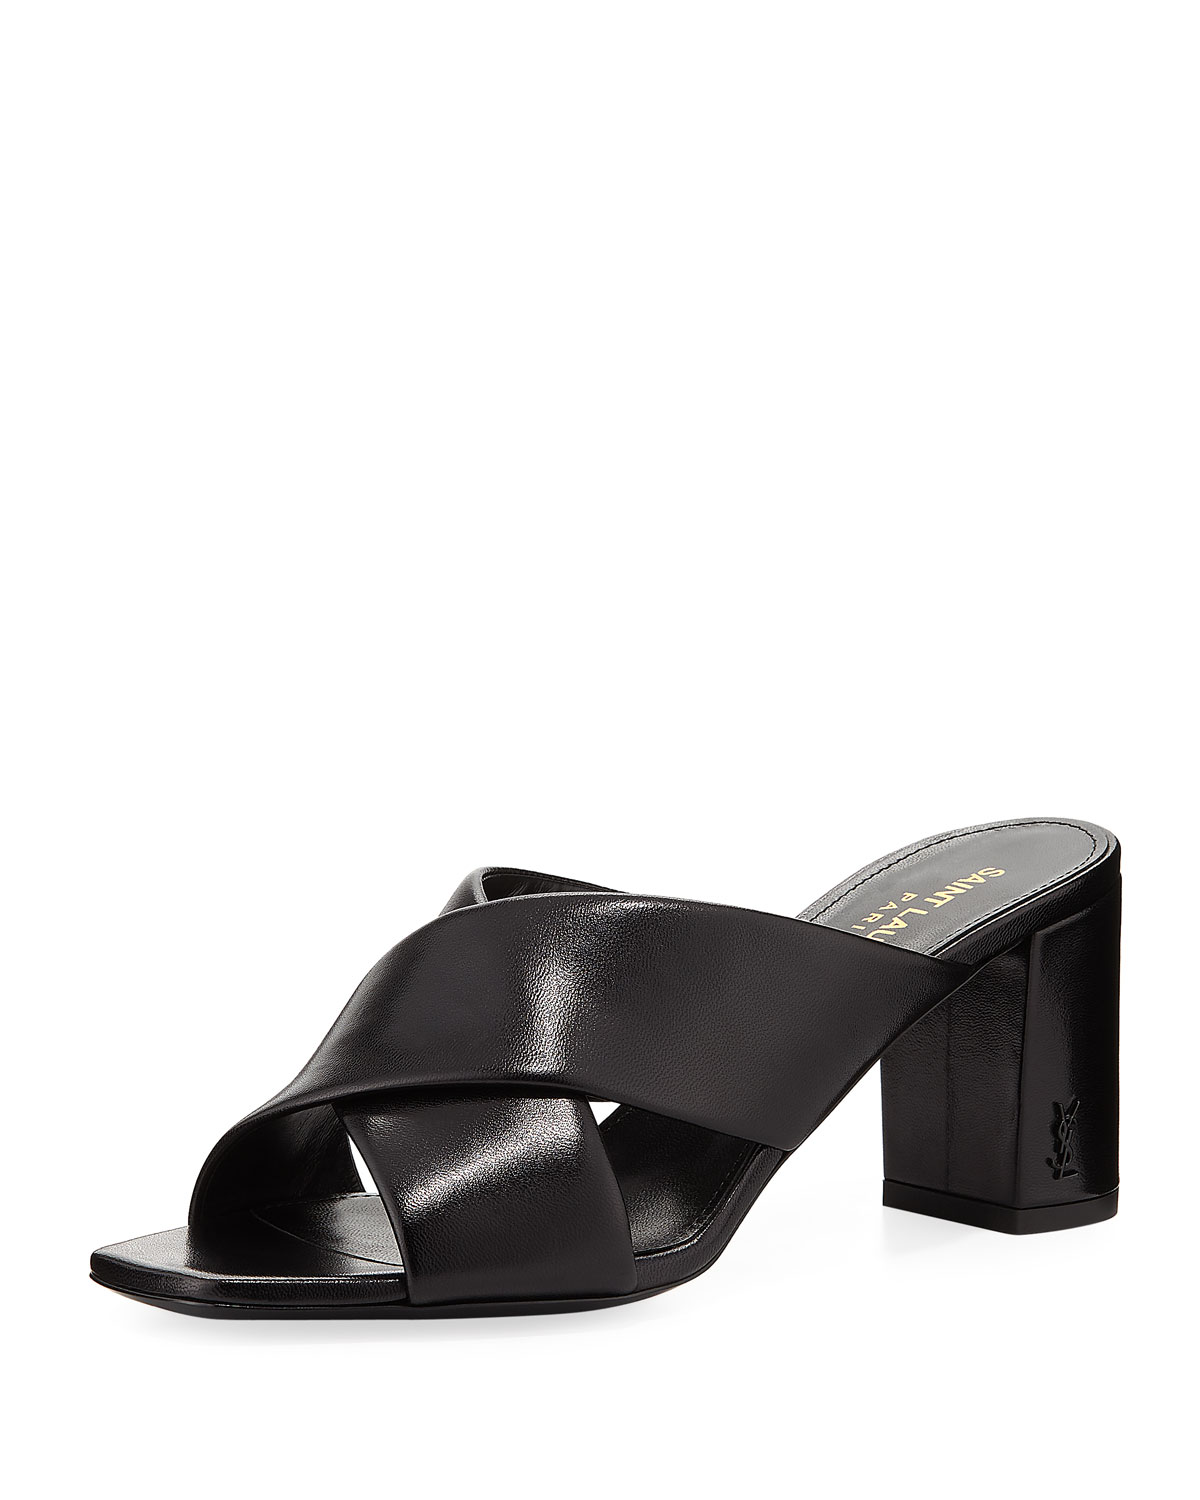 7aad352ce1e9 Saint Laurent Loulou Leather Mule Sandal